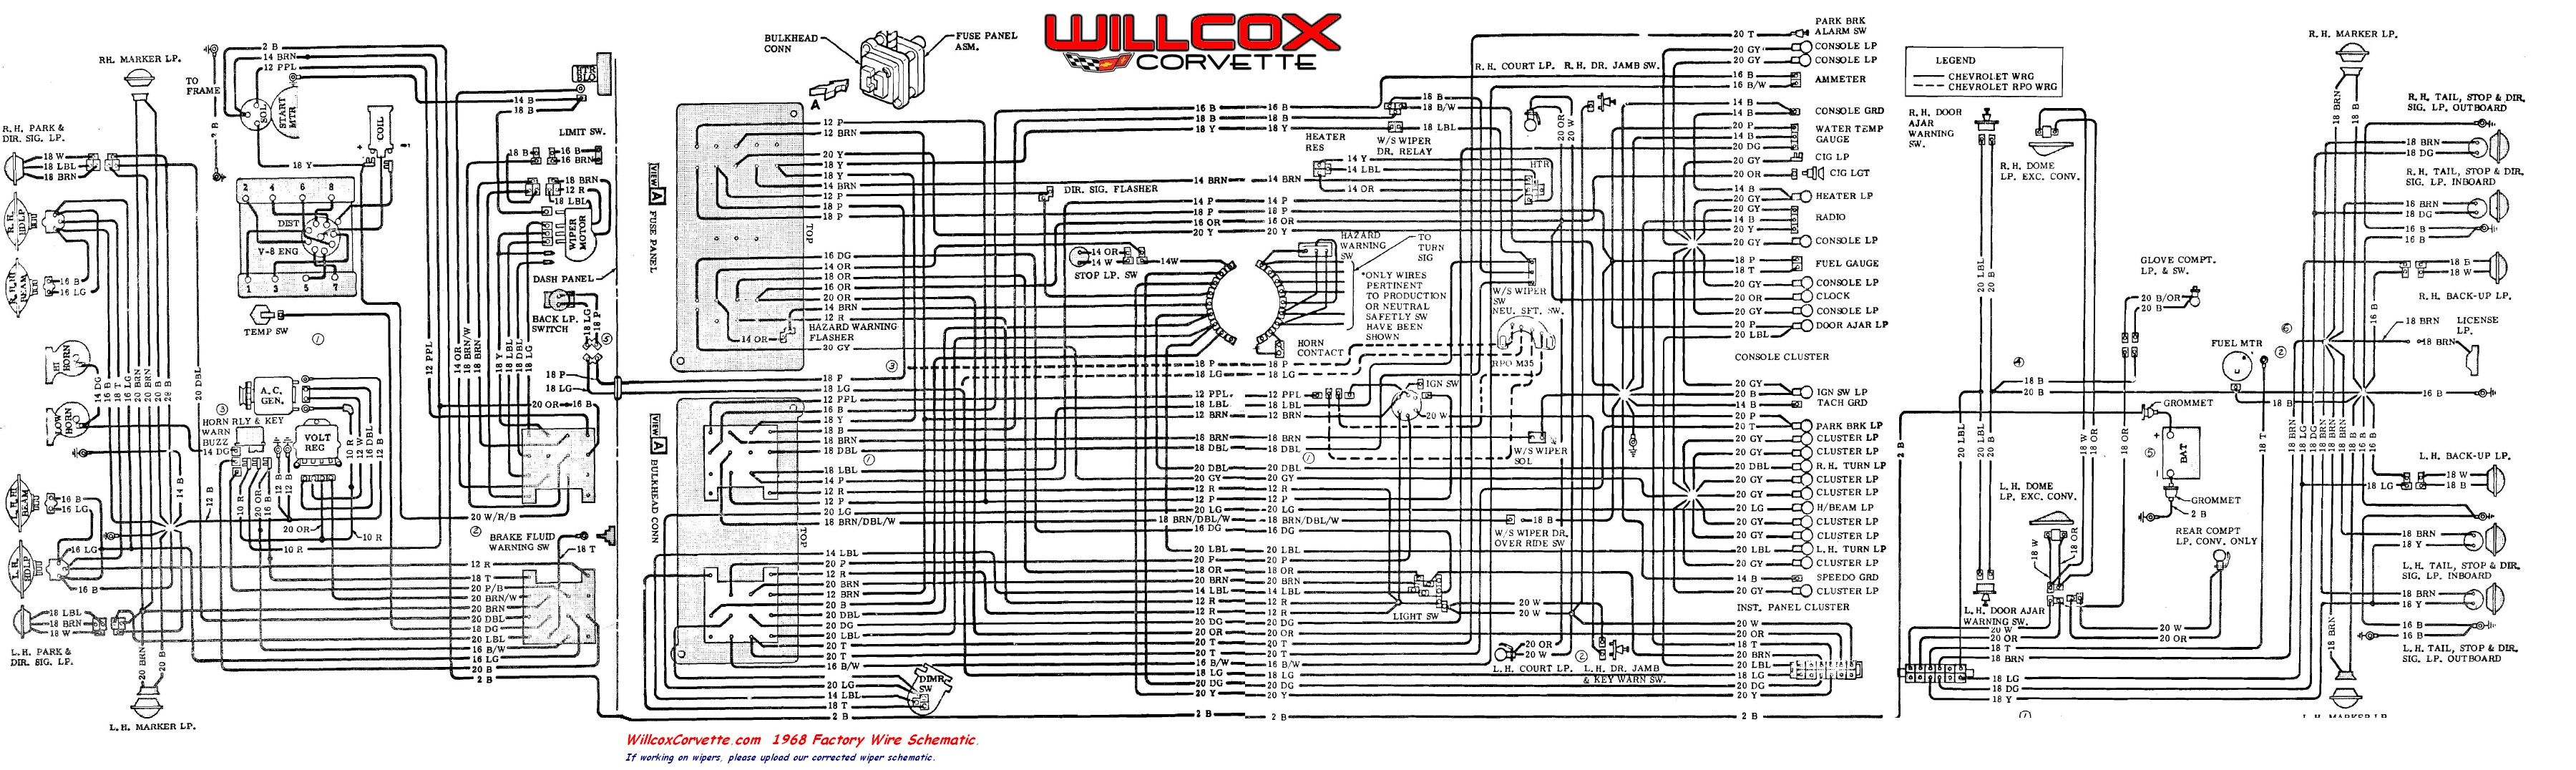 1991 corvette ac wiring diagram product wiring diagrams u2022 rh genesisventures us C4 Corvette Radio Wiring Diagram C4 Corvette Radio Wiring Diagram